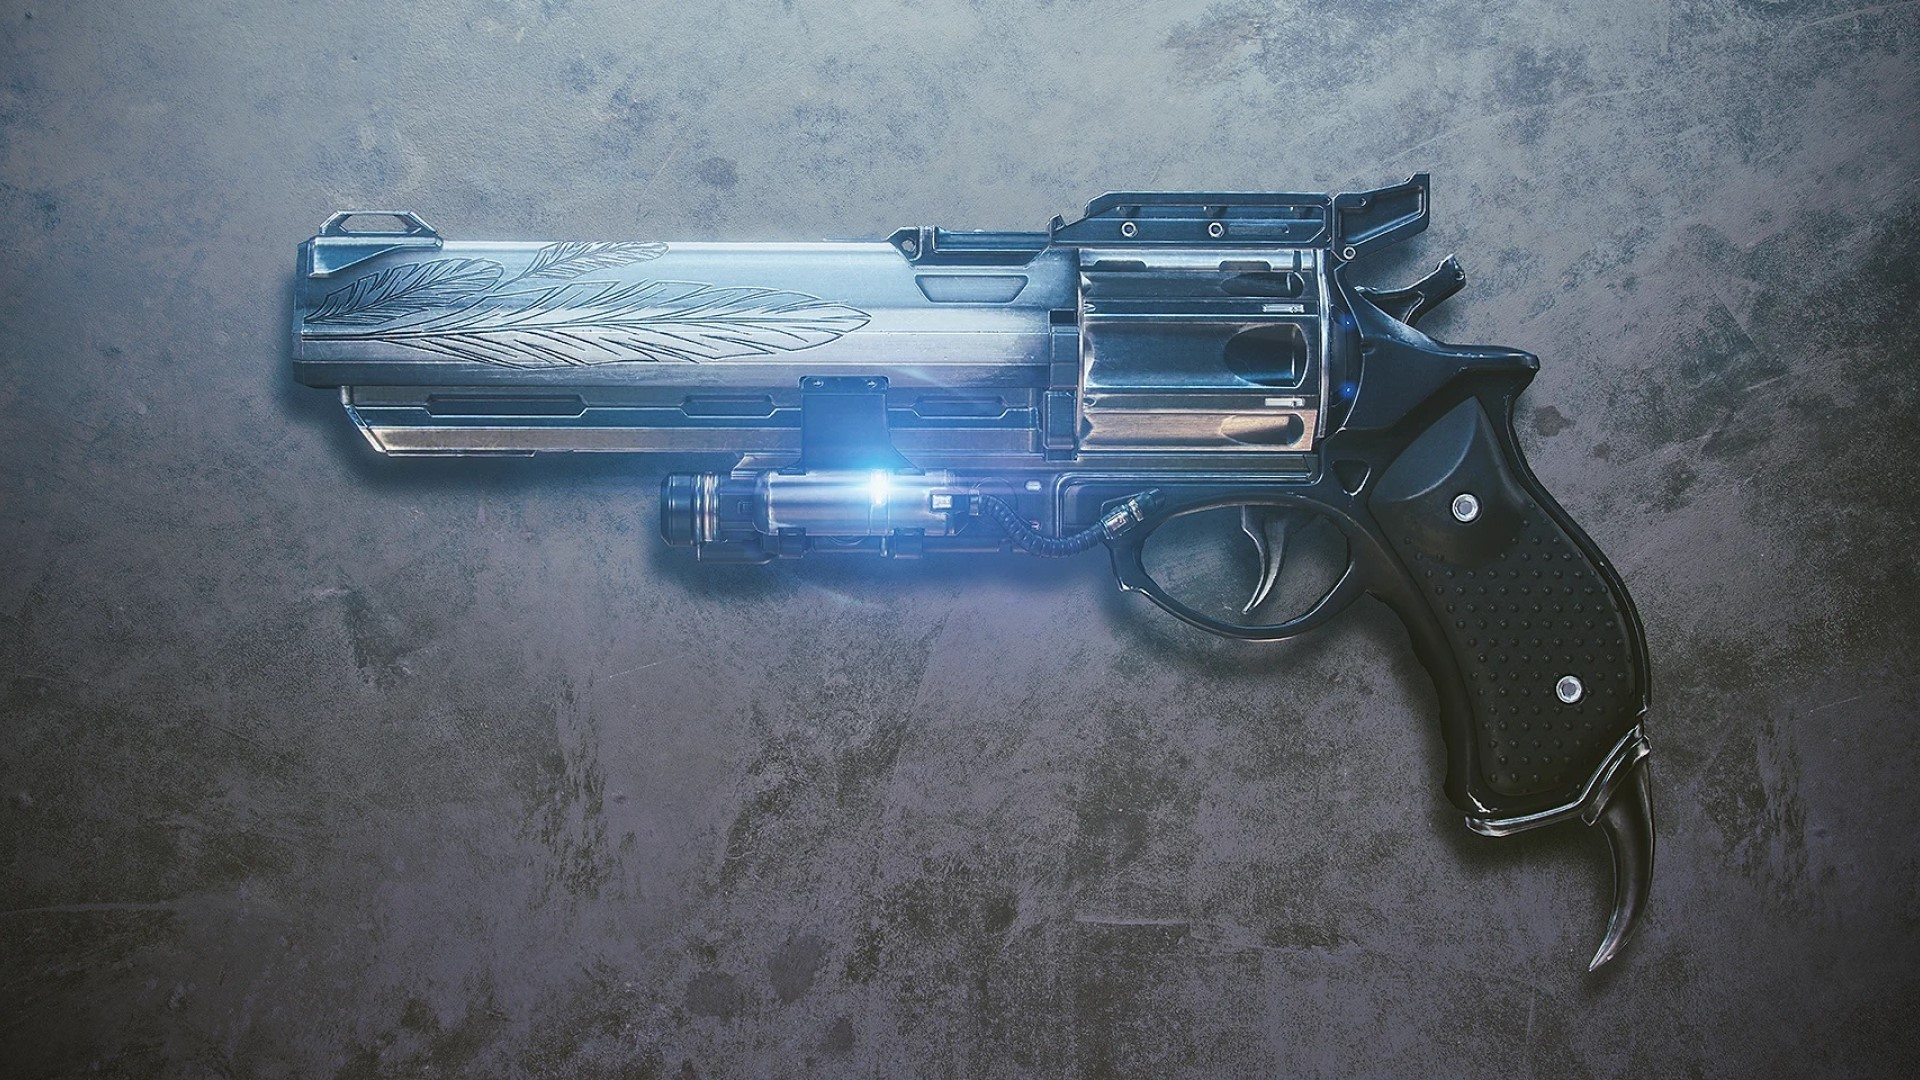 Destiny 2's new hand cannon holster mod gives Hawkmoon infinite one-taps